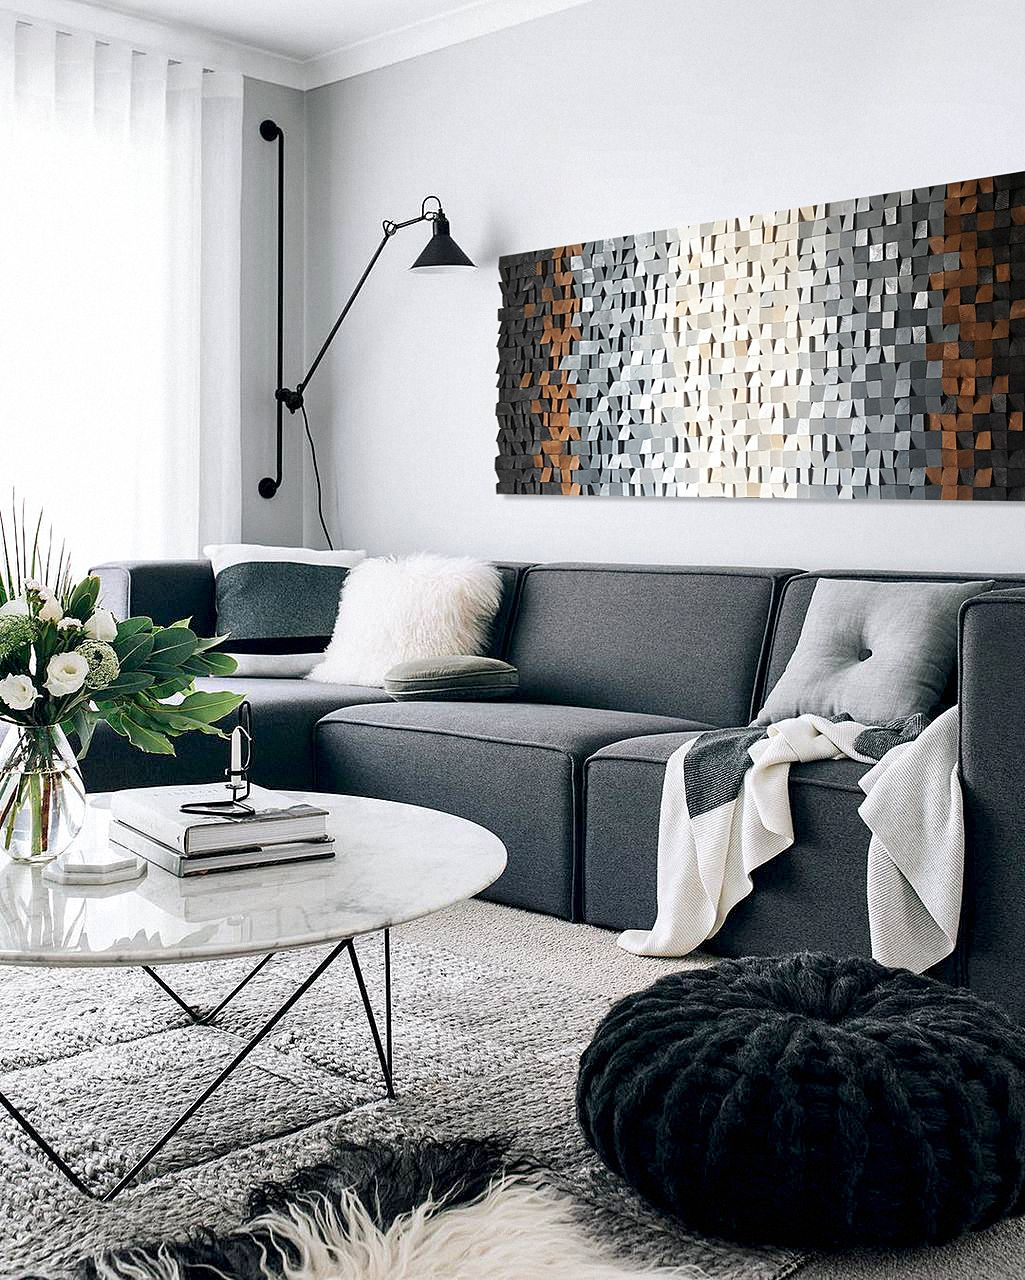 10+ Most Popular Wall Sculpture For Living Room